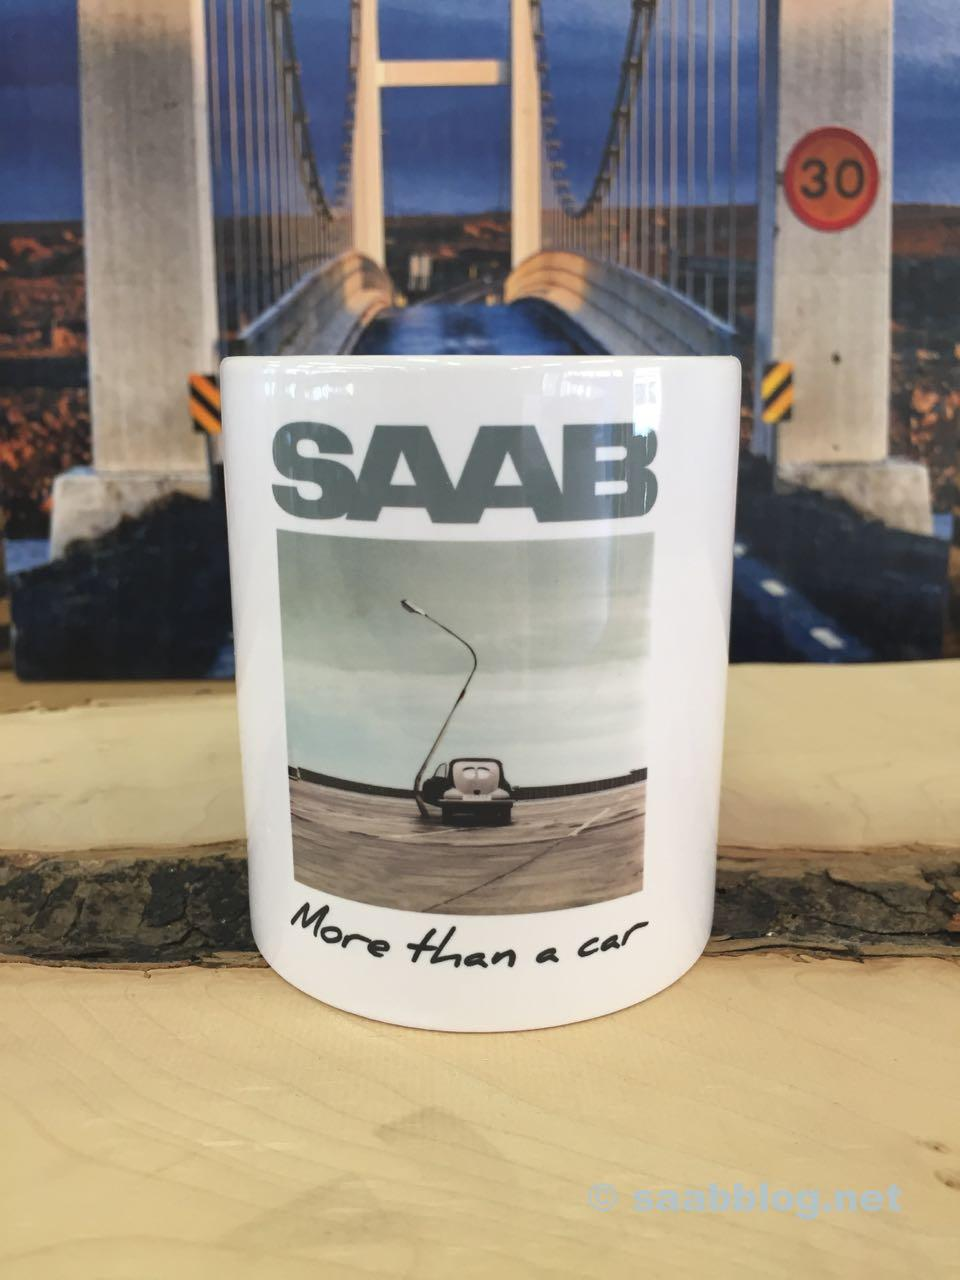 Impact protection 1947. Saab reader cup 2015